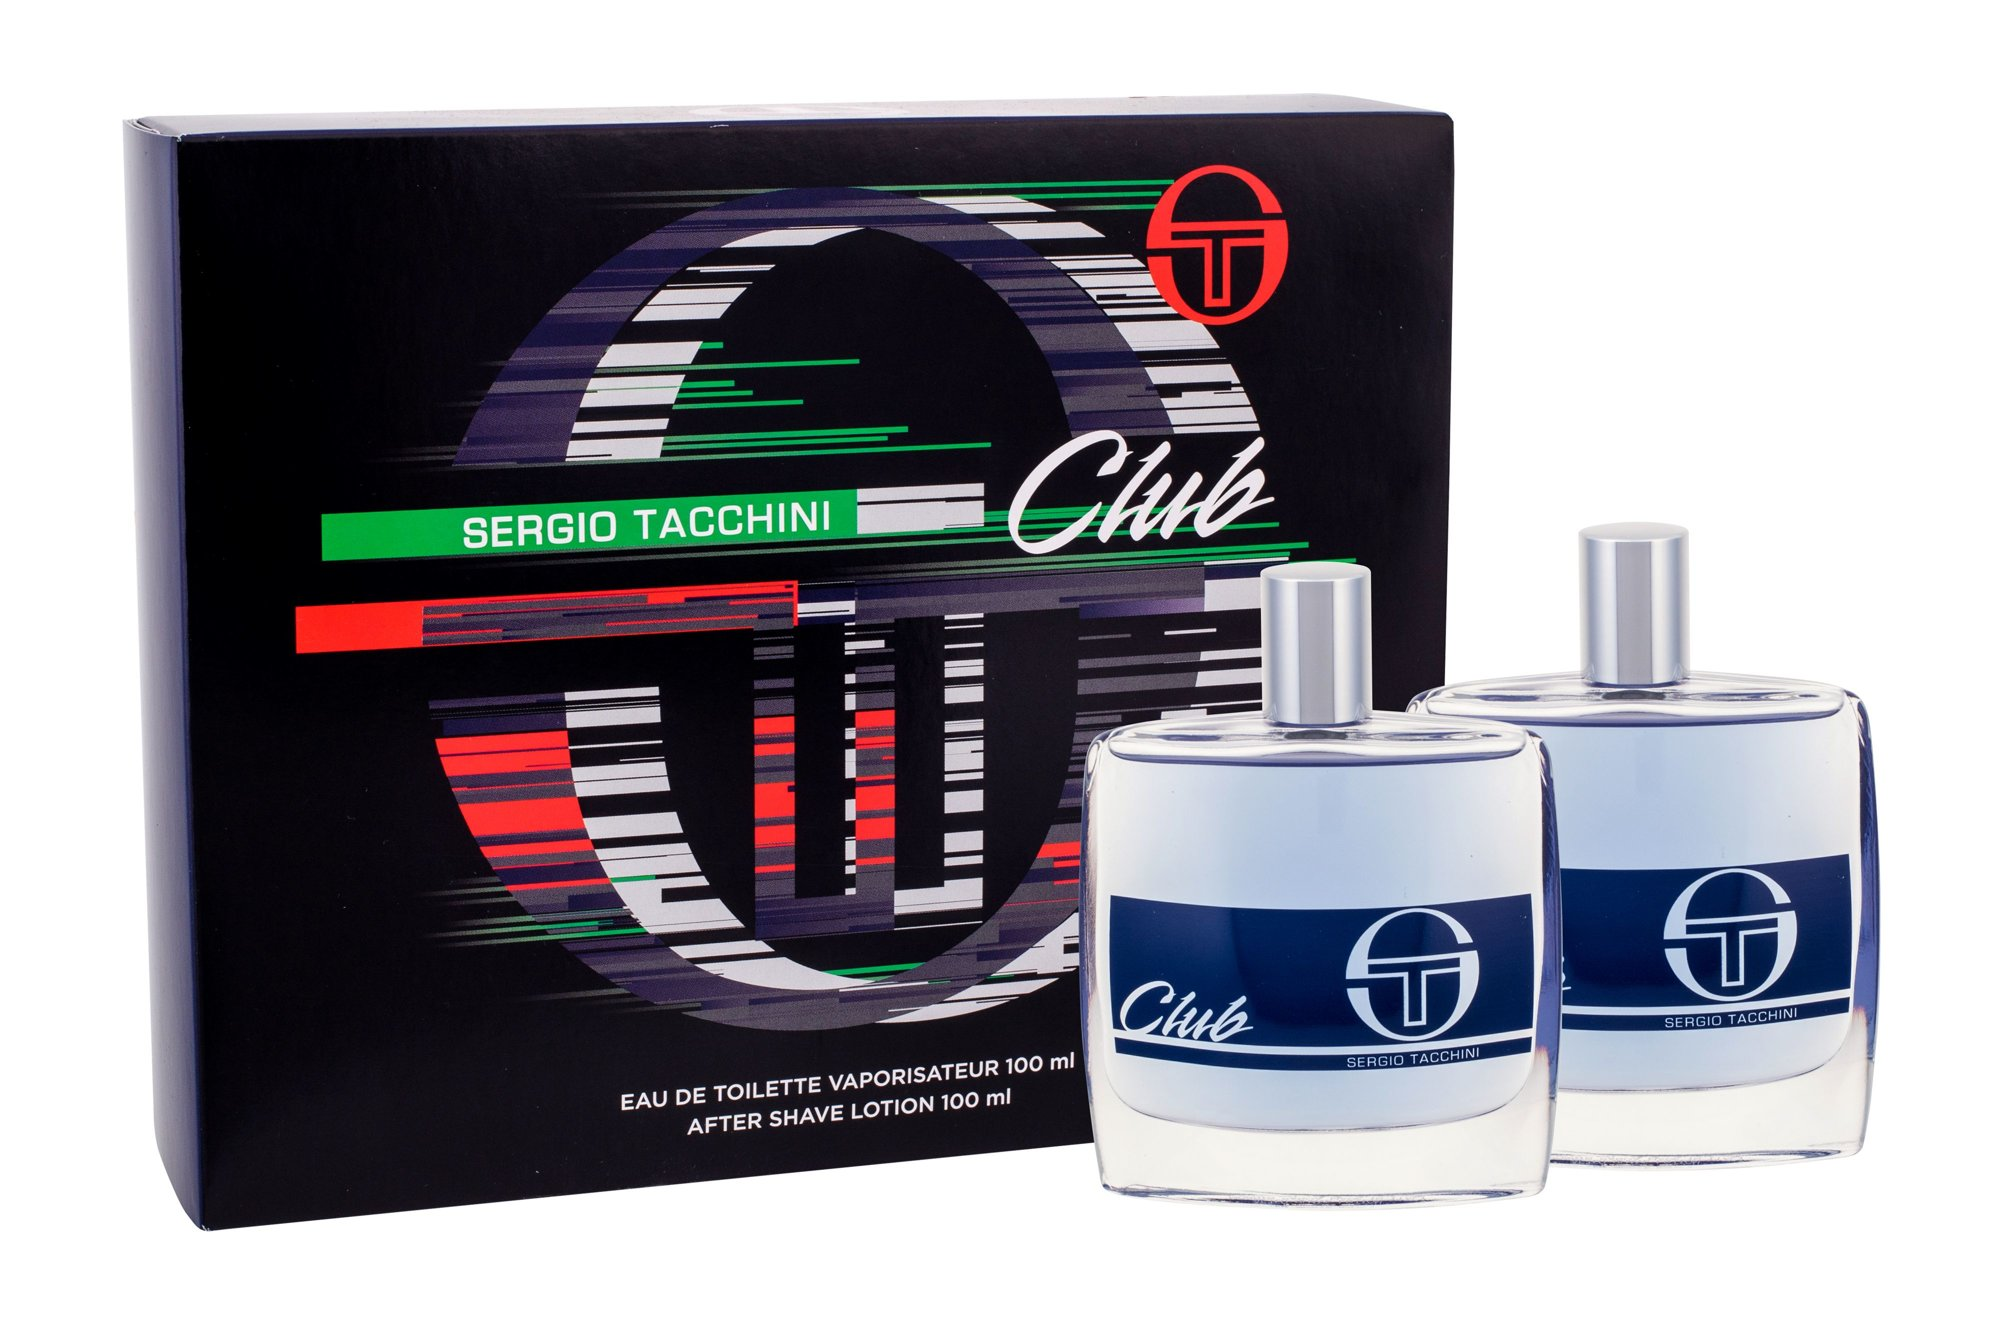 Sergio Tacchini Club Eau de Toilette 100ml